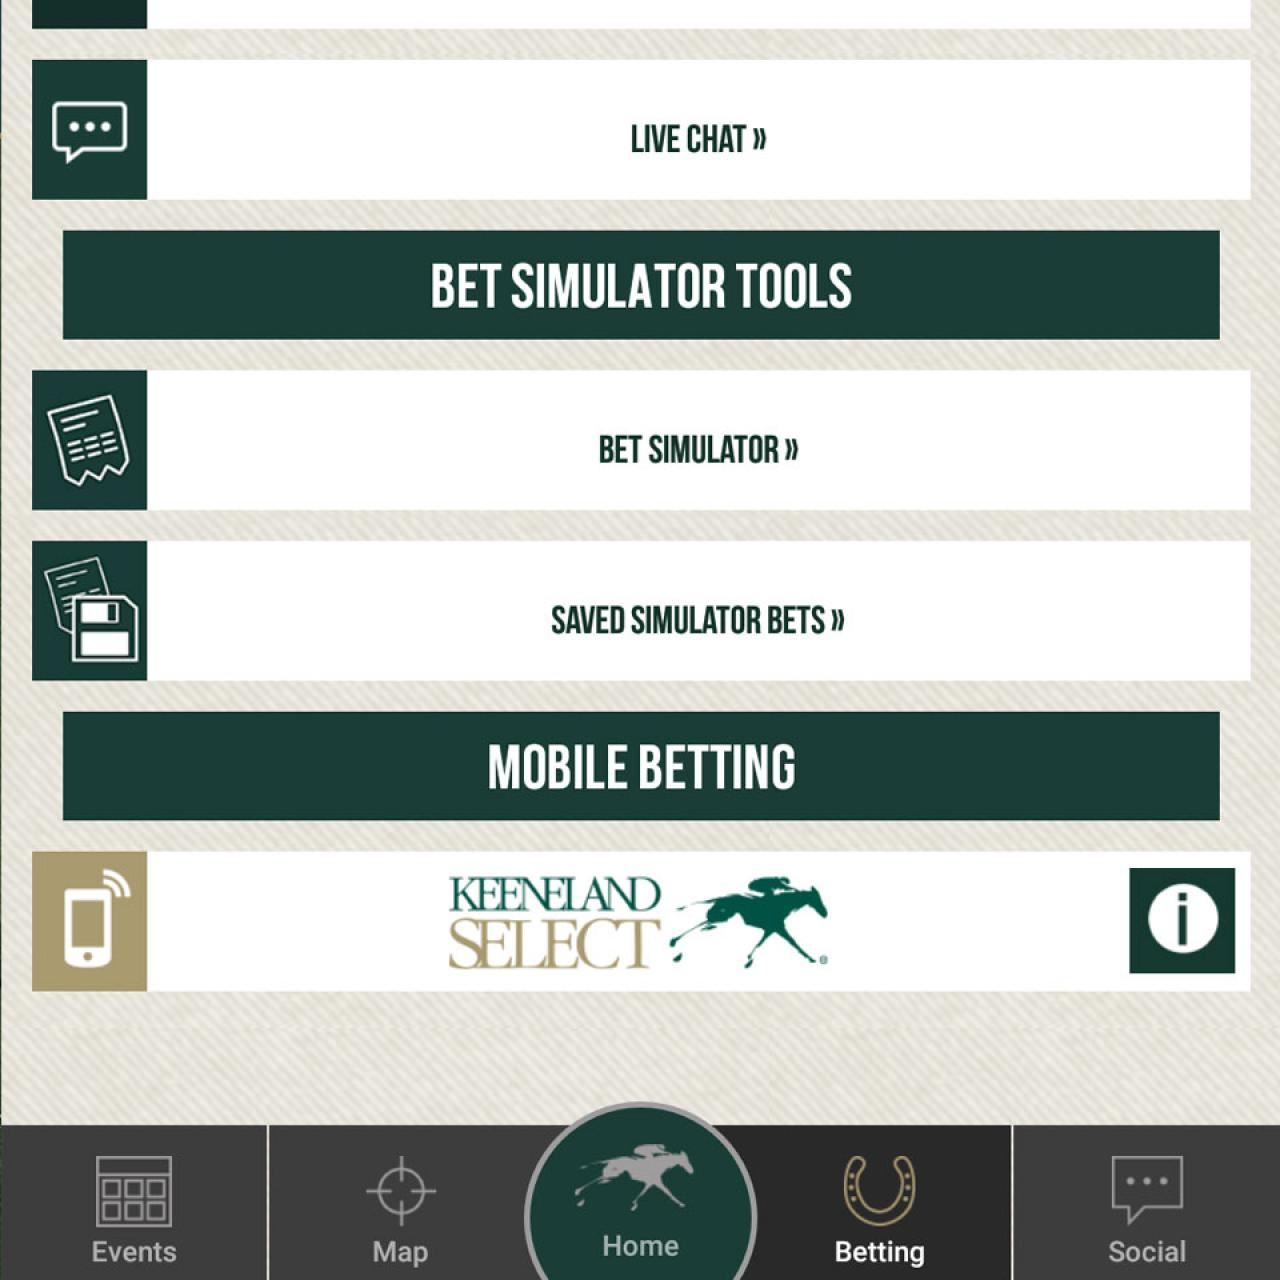 Race Day App Mobile Betting